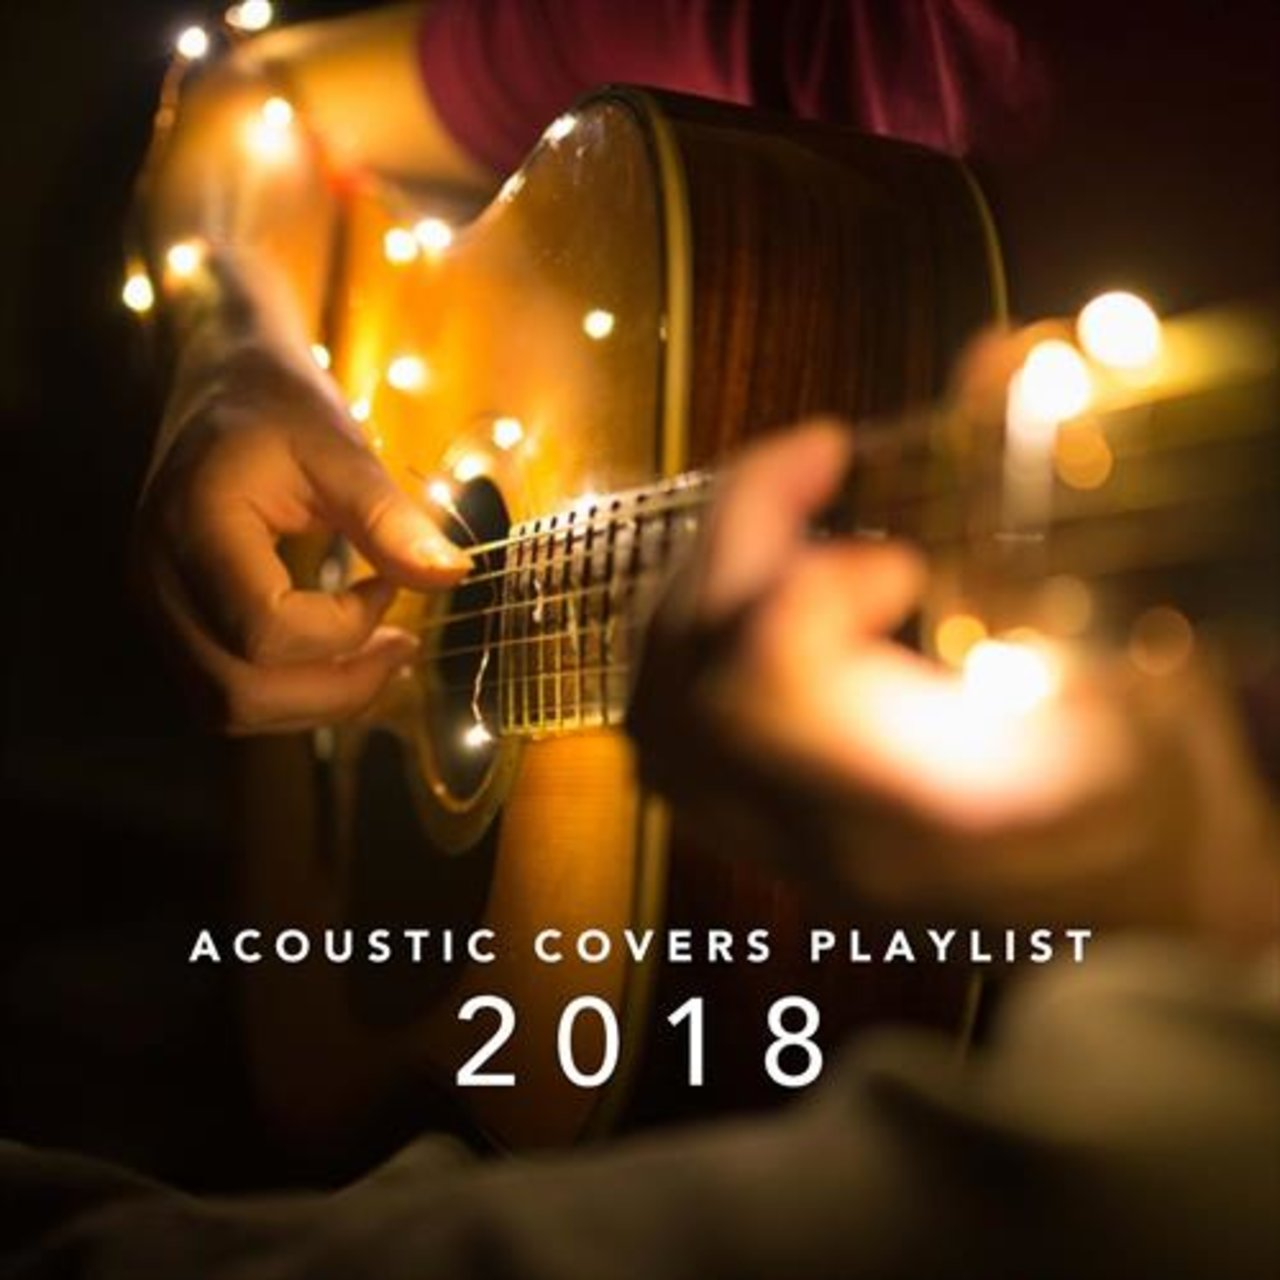 Acoustic Covers Playlist 2018